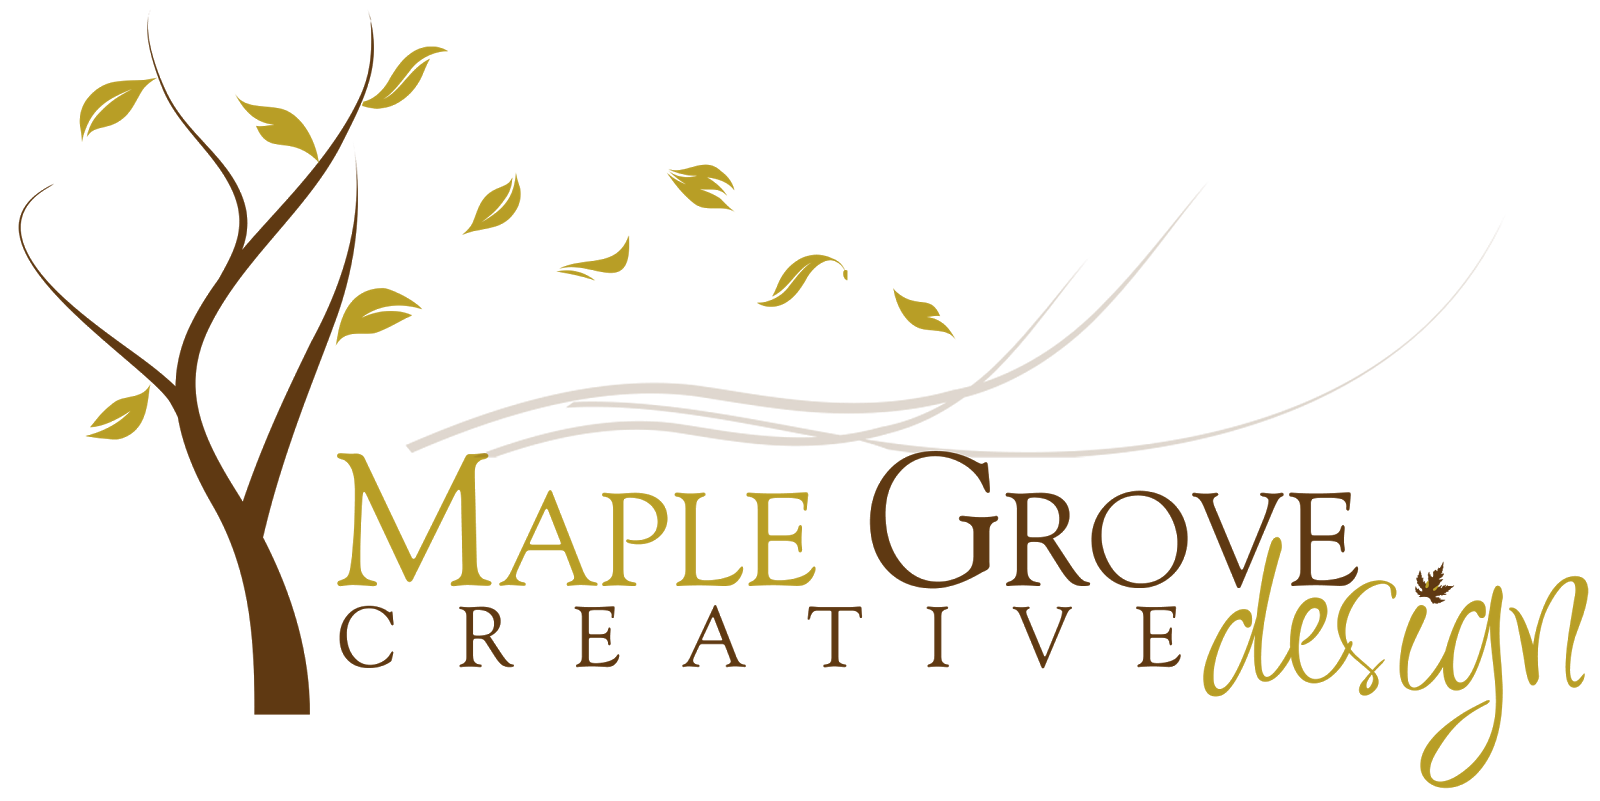 Maple Grove Creative Design